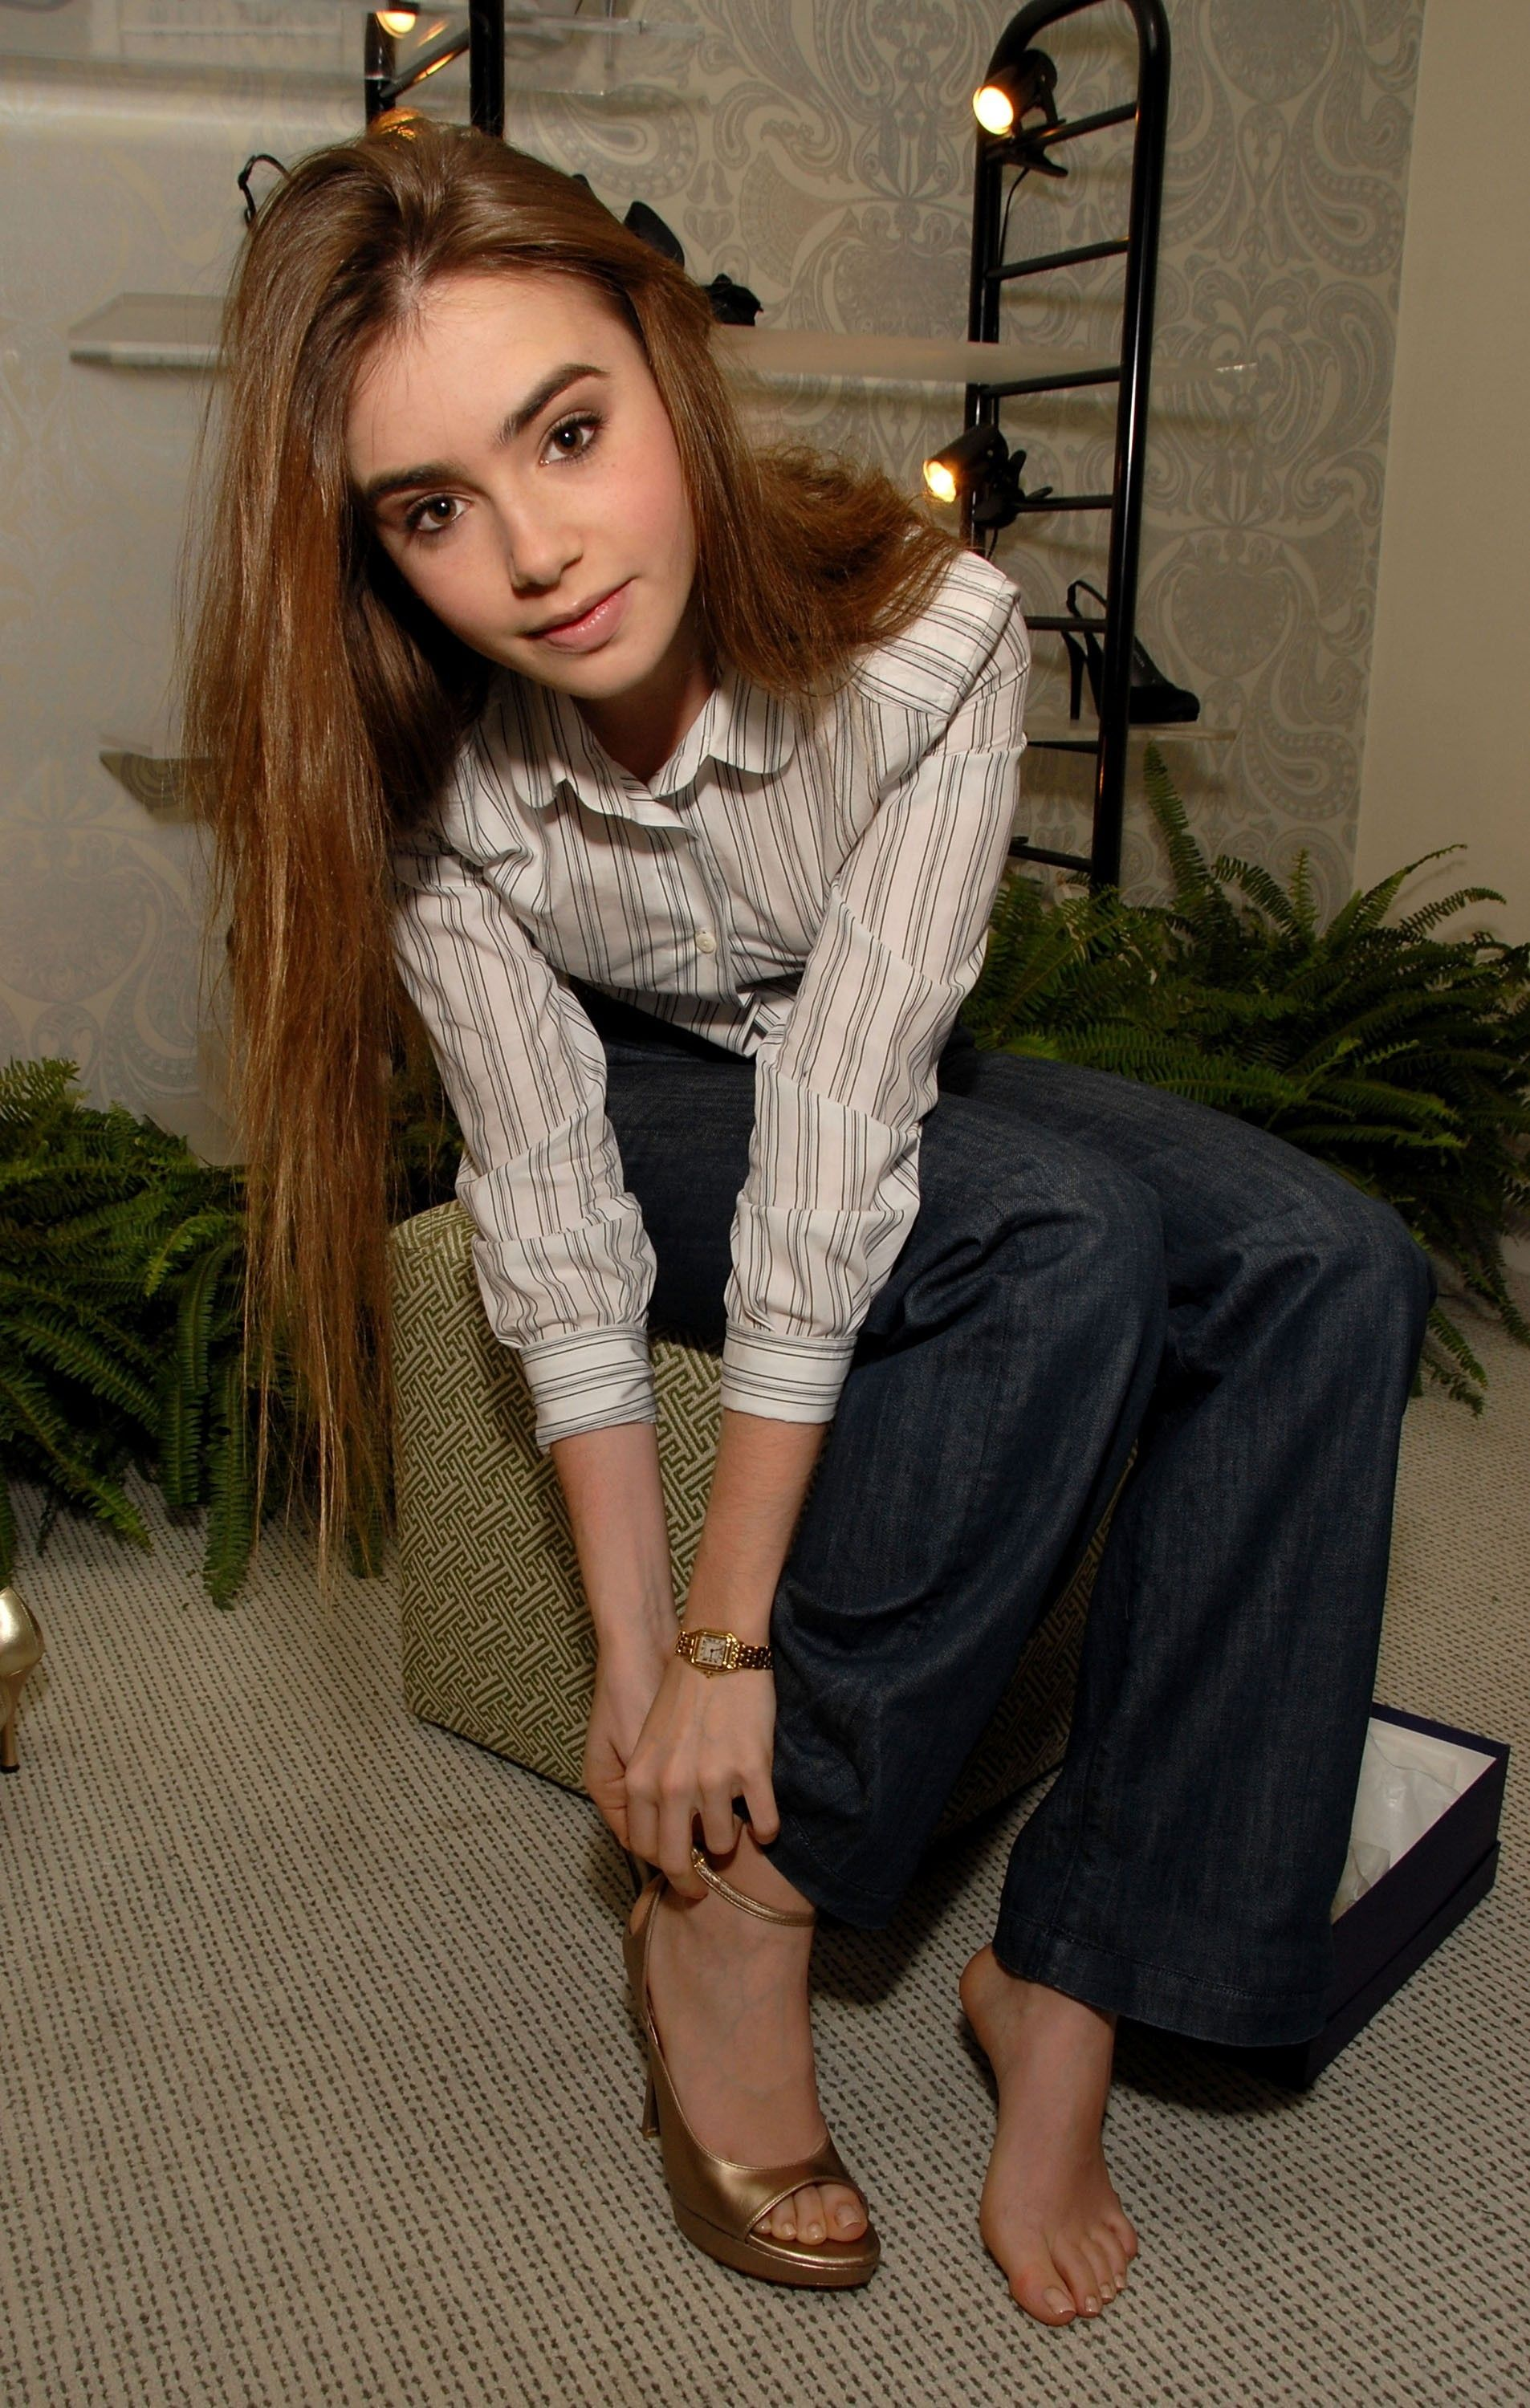 Lilly Collins Feet photo 7